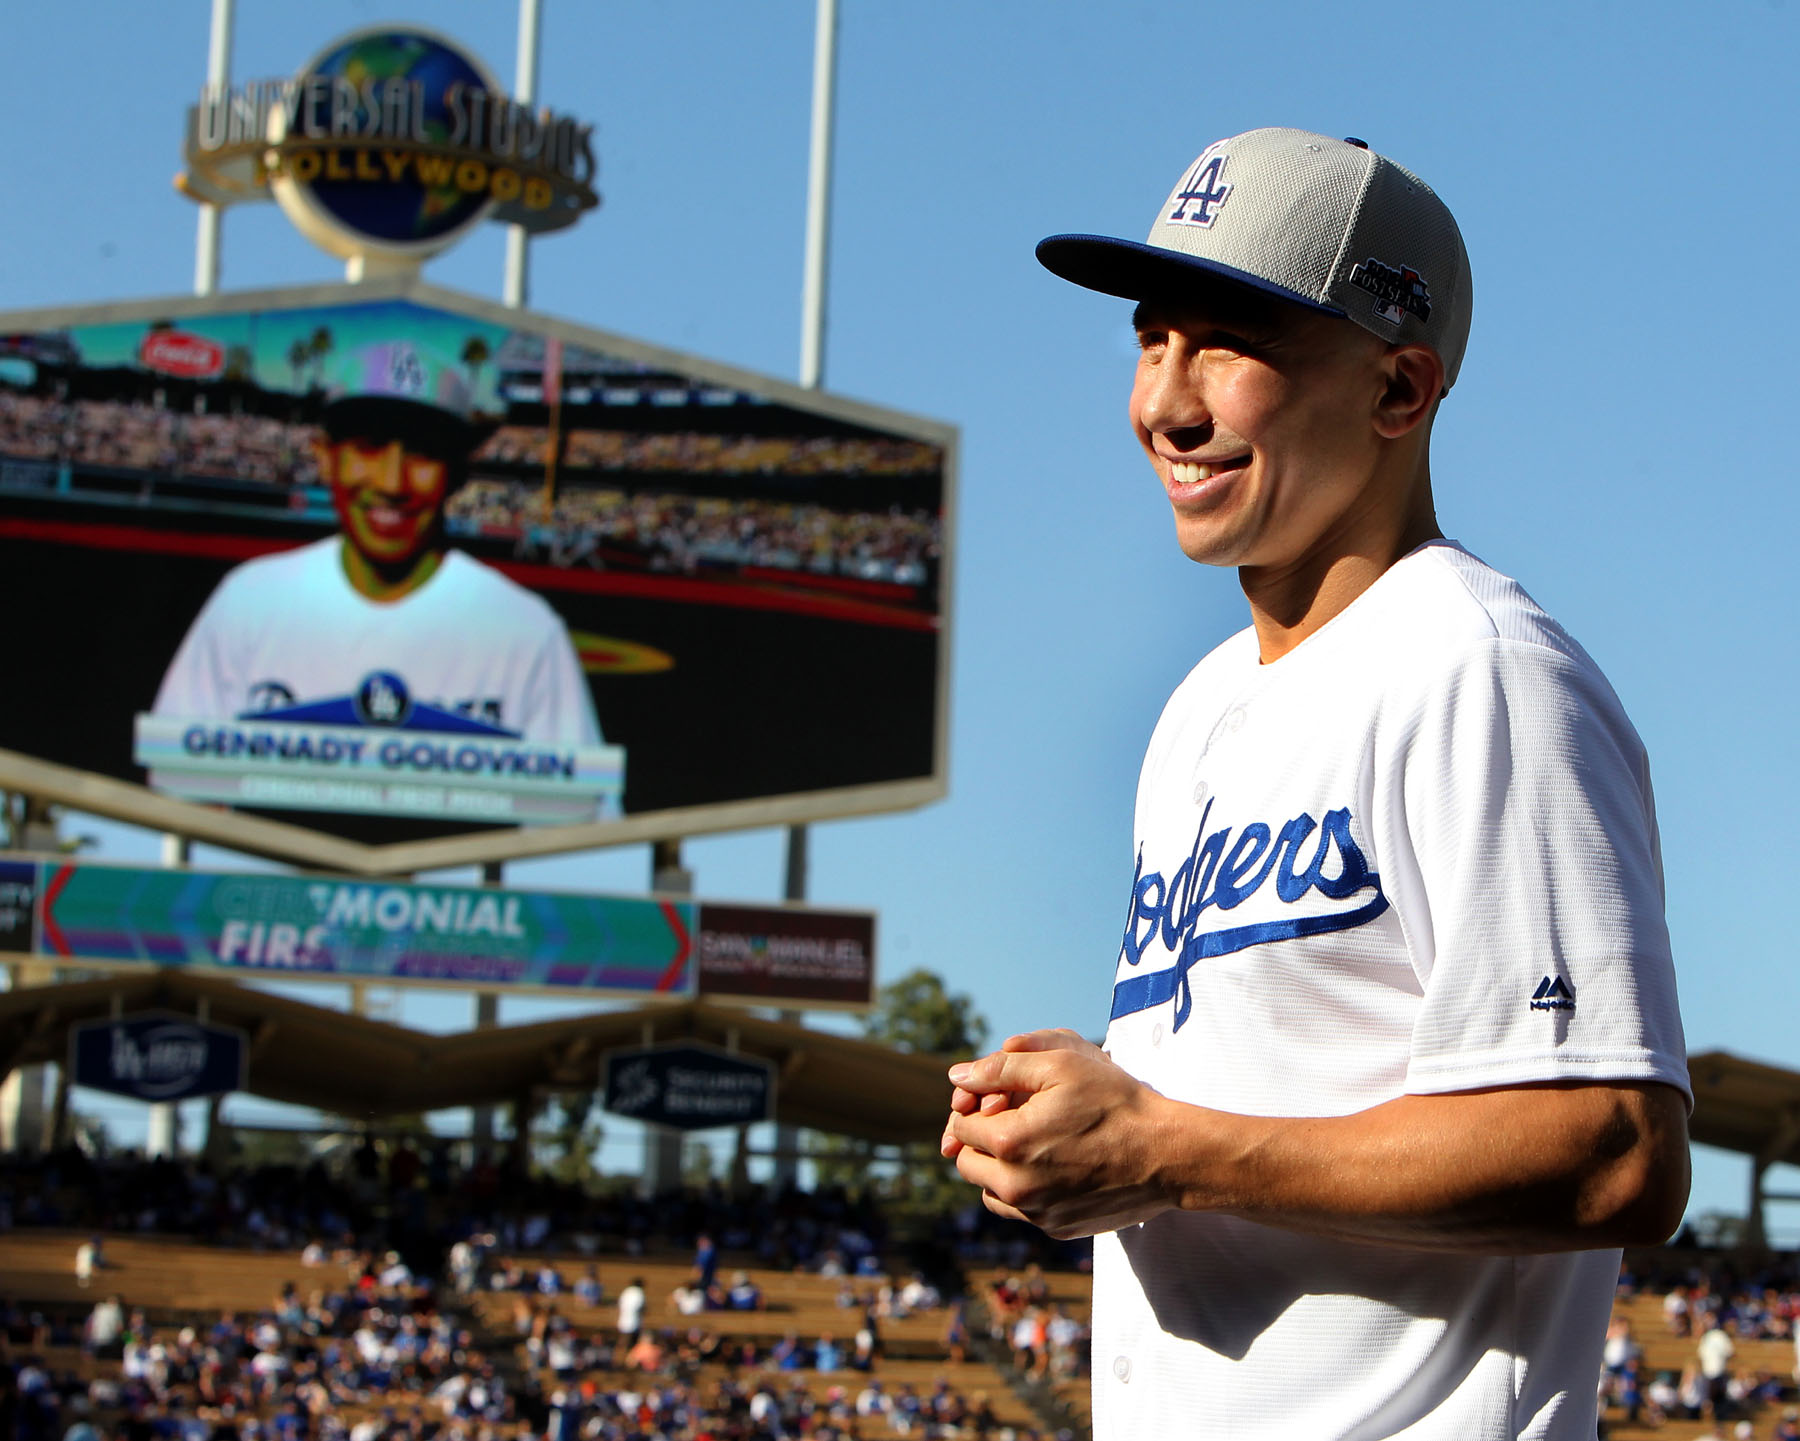 """April 17, 2016 , Los Angeles,Ca. --- Boxing Superstar and Unified World Middleweight Champion Gennady """"GGG"""" Golovkin, 34-0 (31KO's) throws out the first pitch during the Los Angeles Dodgers-San Francisco baseball game Sunday in Los Angeles,California. Golovkin will take on undefeated mandatory challenger Dominic """"Lights Out"""" Wade, 18-0 (12KO's) , Saturday, April 23 from the Fabulous Forum. This championship battle will be televised Live on HBO World Championship Boxing®beginning at 10:00 p.m. ET/PT. Golovkin vs. Wade is promoted by K2 Promotions, GGGPromotions and in association with TGBPromotions. --- Photo Credit : Chris Farina - K2 Promotions copyright 2016 ===== SOCIAL MEDIA: For moreinformation, visit www.K2Promos.com, www.GGGBoxing.com, www.TGBPromotions.com, www.FabulousForum.com and www.HBO.com/boxing. Follow on Twitter at Gennady Golovkin @GGGBoxing,Dominic Wade @_DomoWade, Roman Gonzalez @chocolatitobox, TomLoeffler/K2 Promotions @TomLoeffler1, TGBPromotions @TGBpromotions, the Forum @theForum and HBO Boxing @HBOBoxingand become a fan on Facebook www.facebook.com/GGGBoxing, www.facebook.com/TheForum and www.facebook.com/HBOBoxing. Use the hashtags #GolovkinWade and #GomzalezArroyoto join the conversations on social media."""